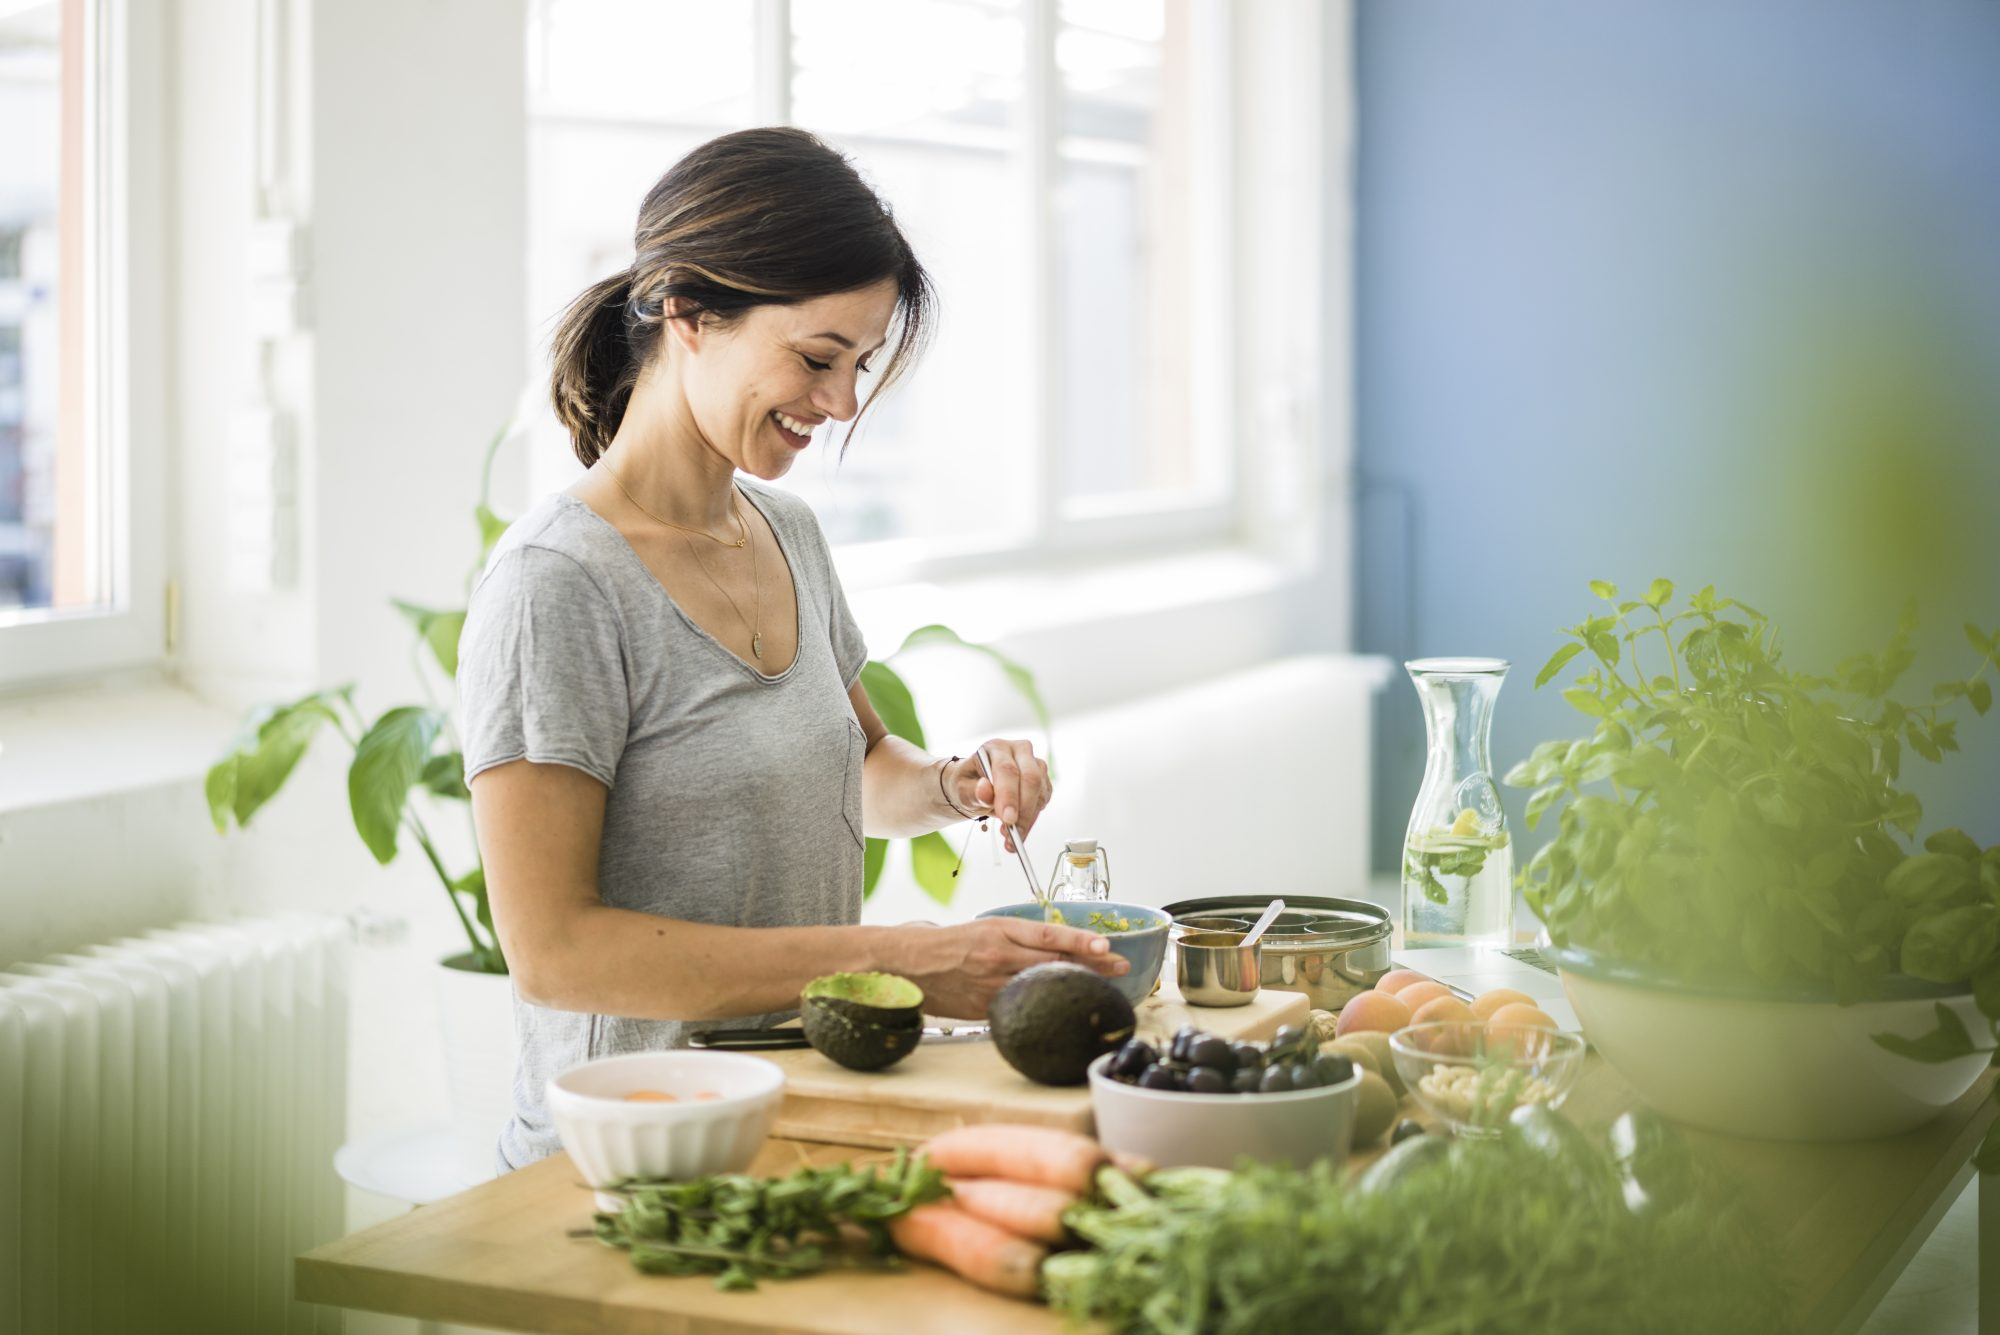 woman preparing avocado and vegetables in her kitchen